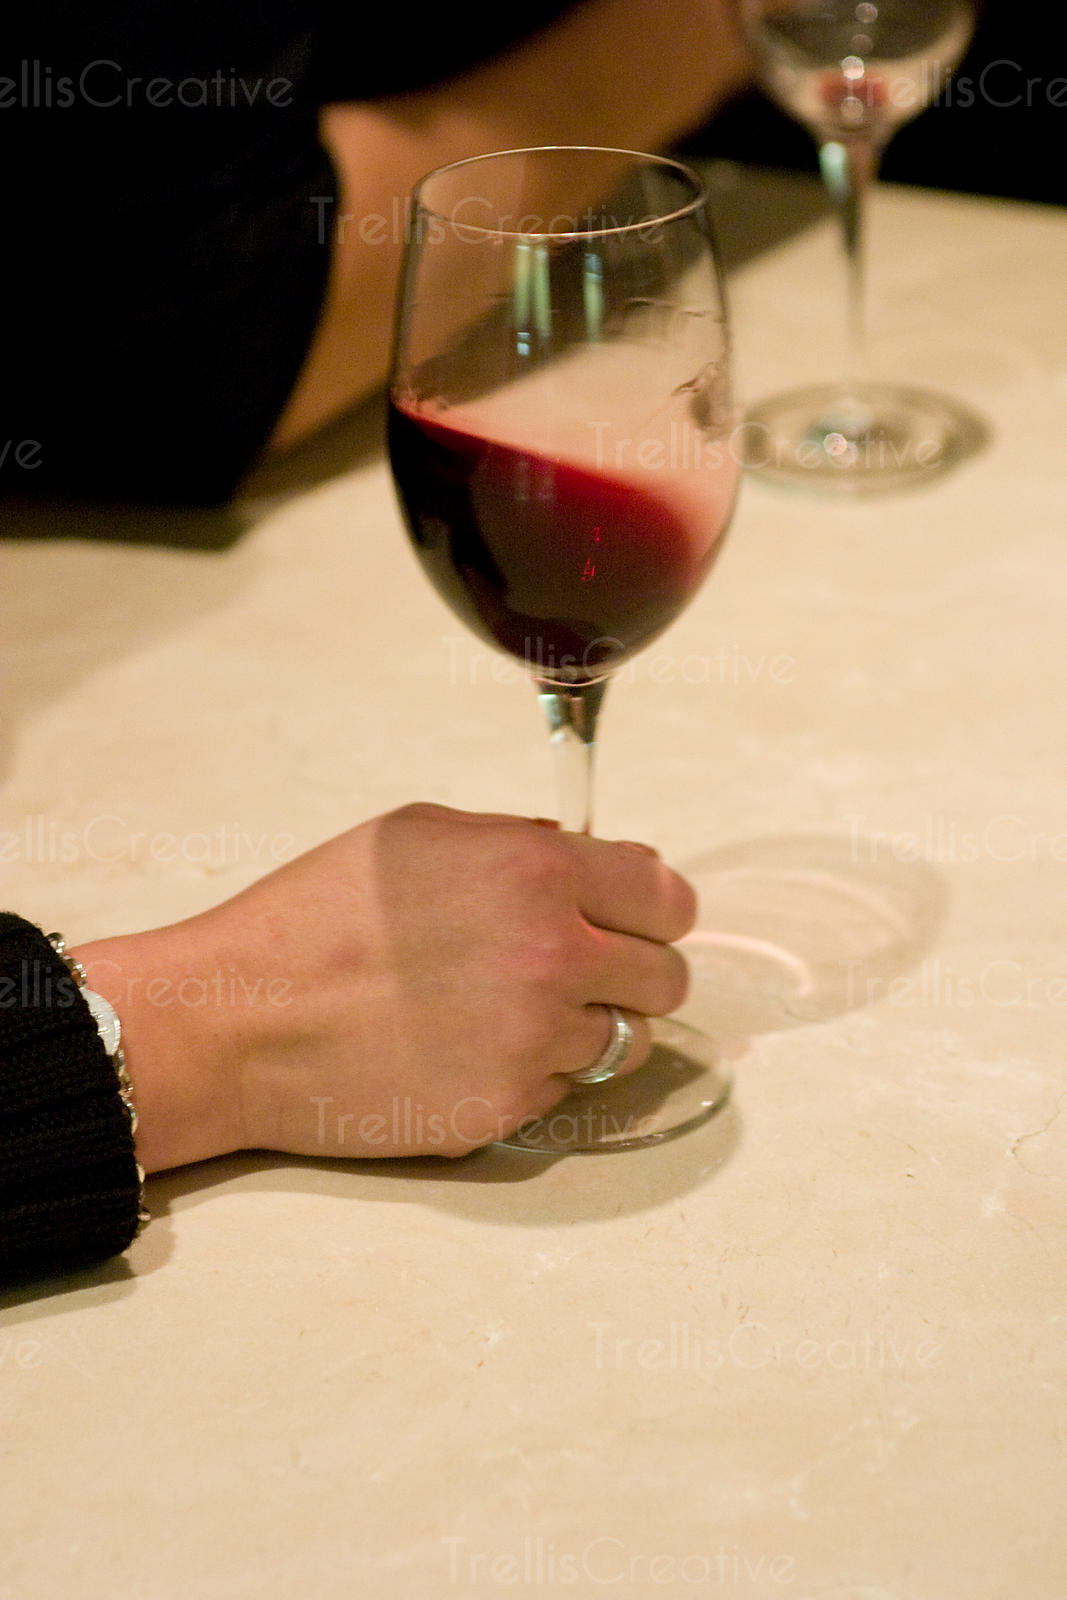 Close-up of a young woman's hand swirling a glass of red wine